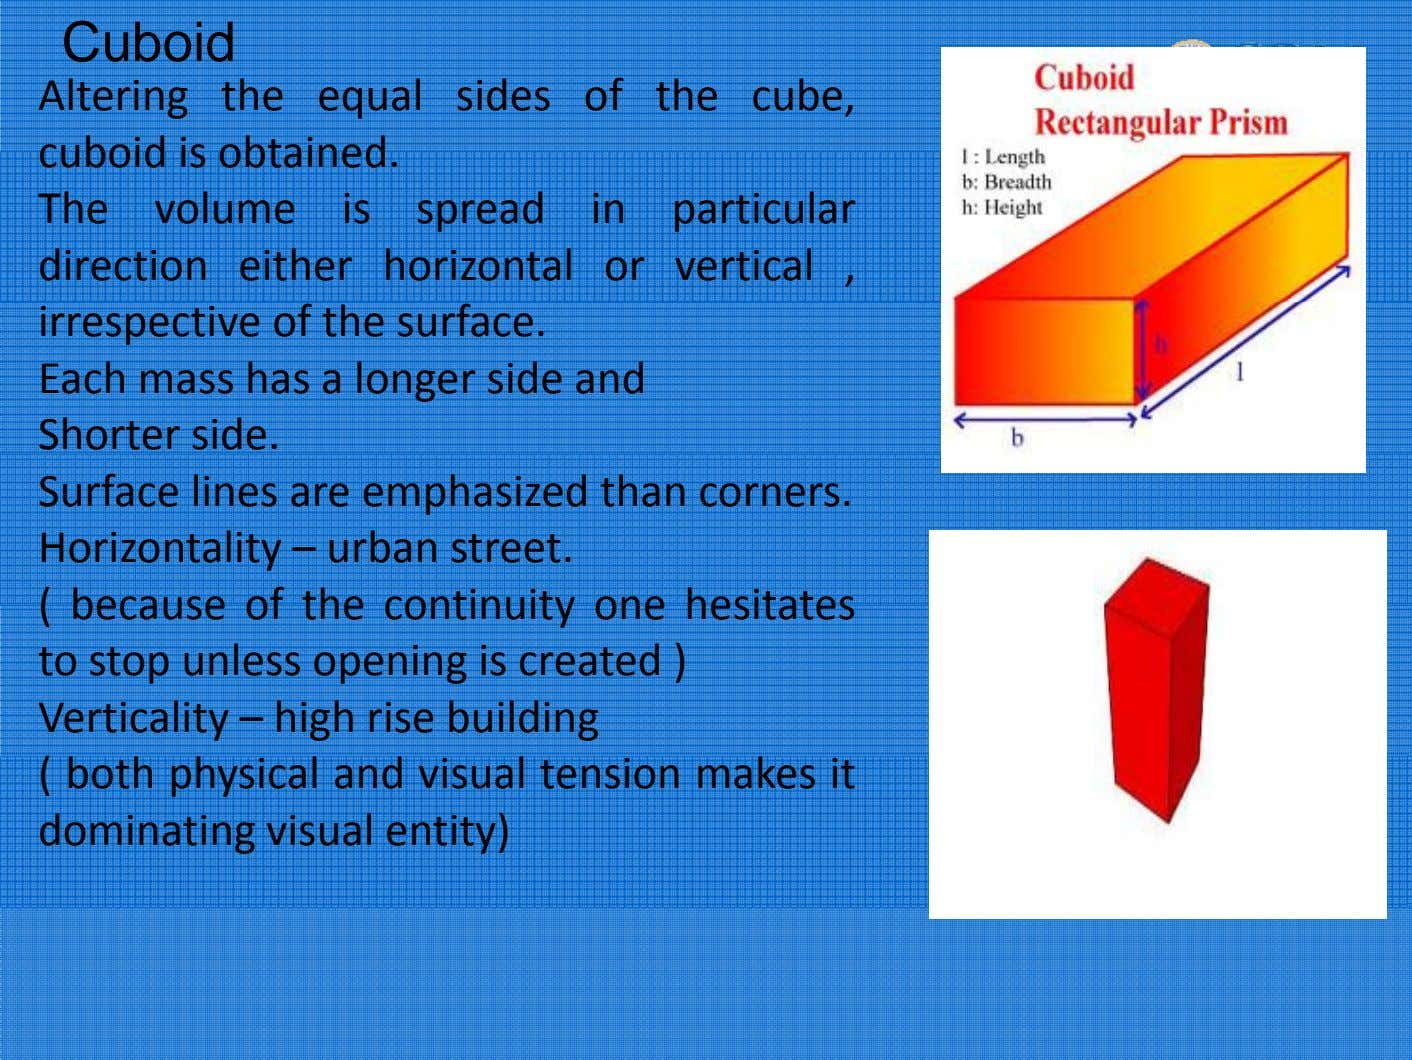 Cuboid Altering the equal sides of the cube, cub oid i s o bta i